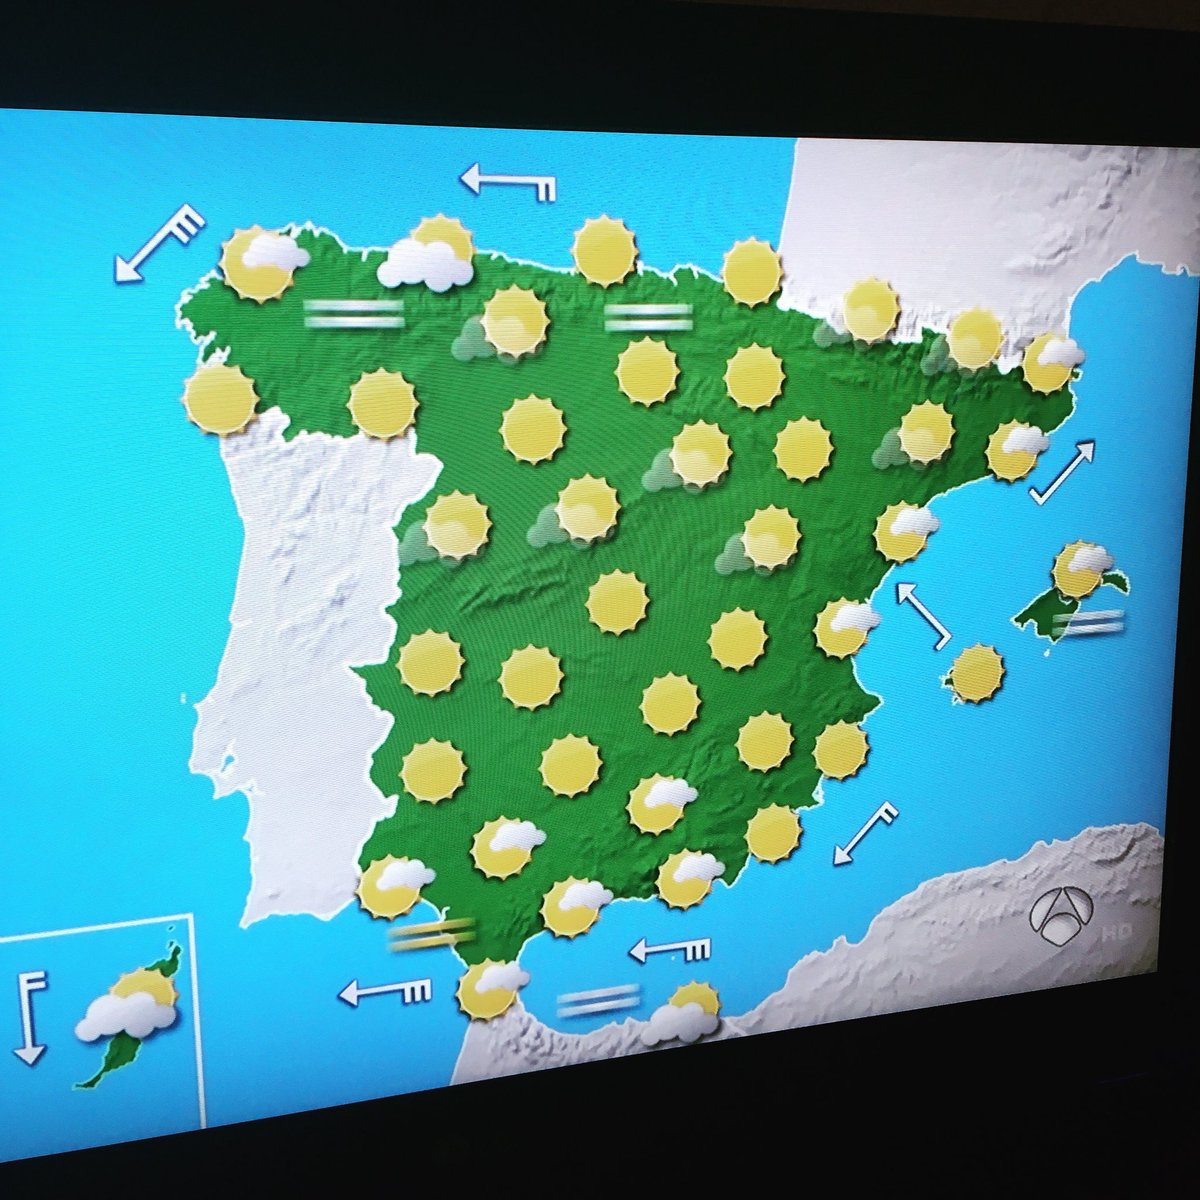 Weather Map Of Spain.Grub On Twitter The Weather Forecast In Spain Is Currently Quite